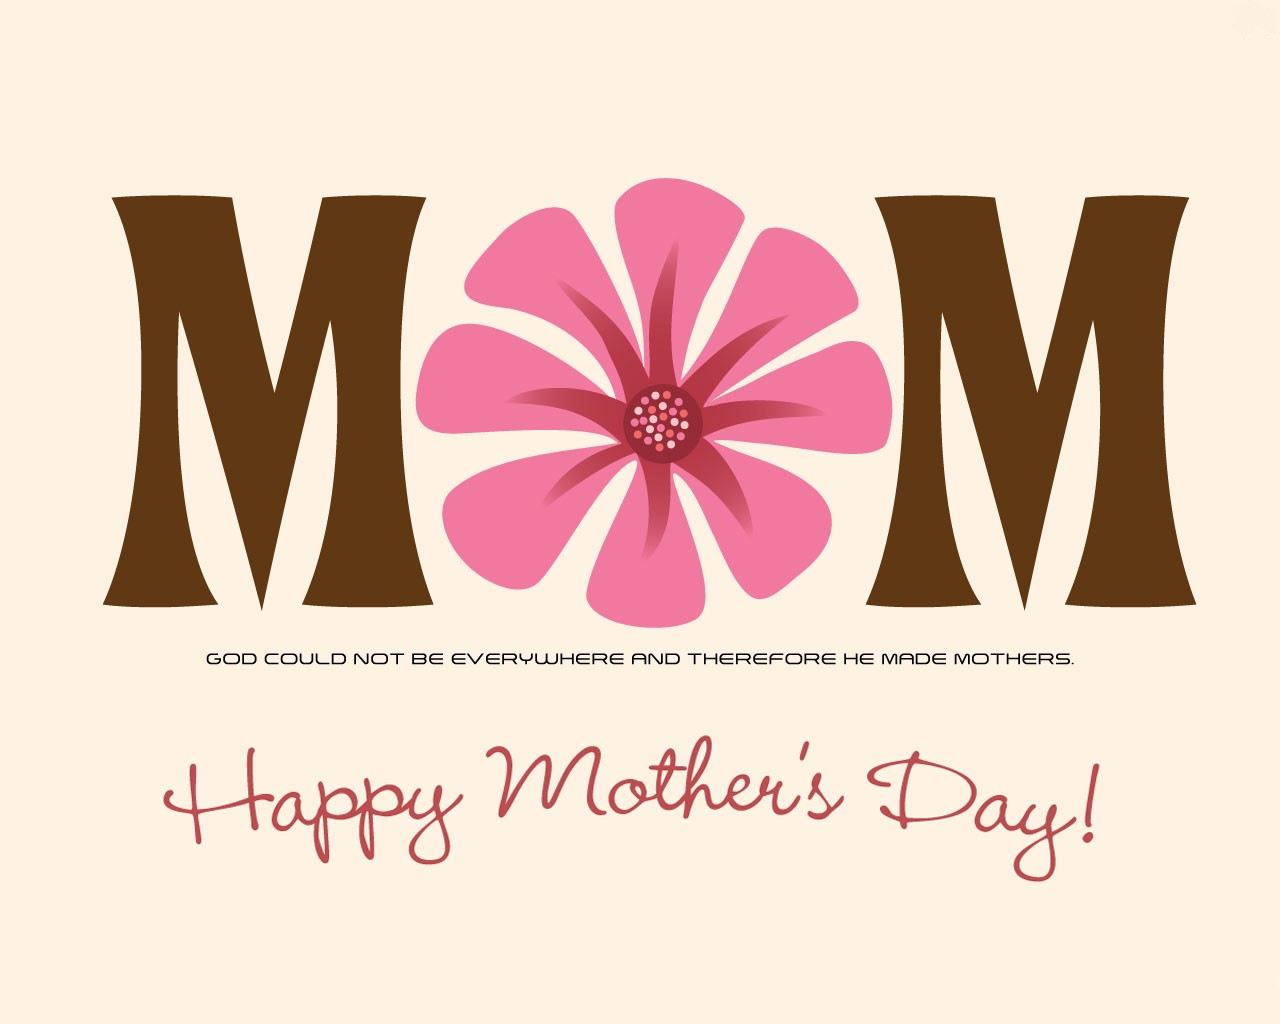 happy mothers day hd wallpaper,pink,font,text,logo,graphics